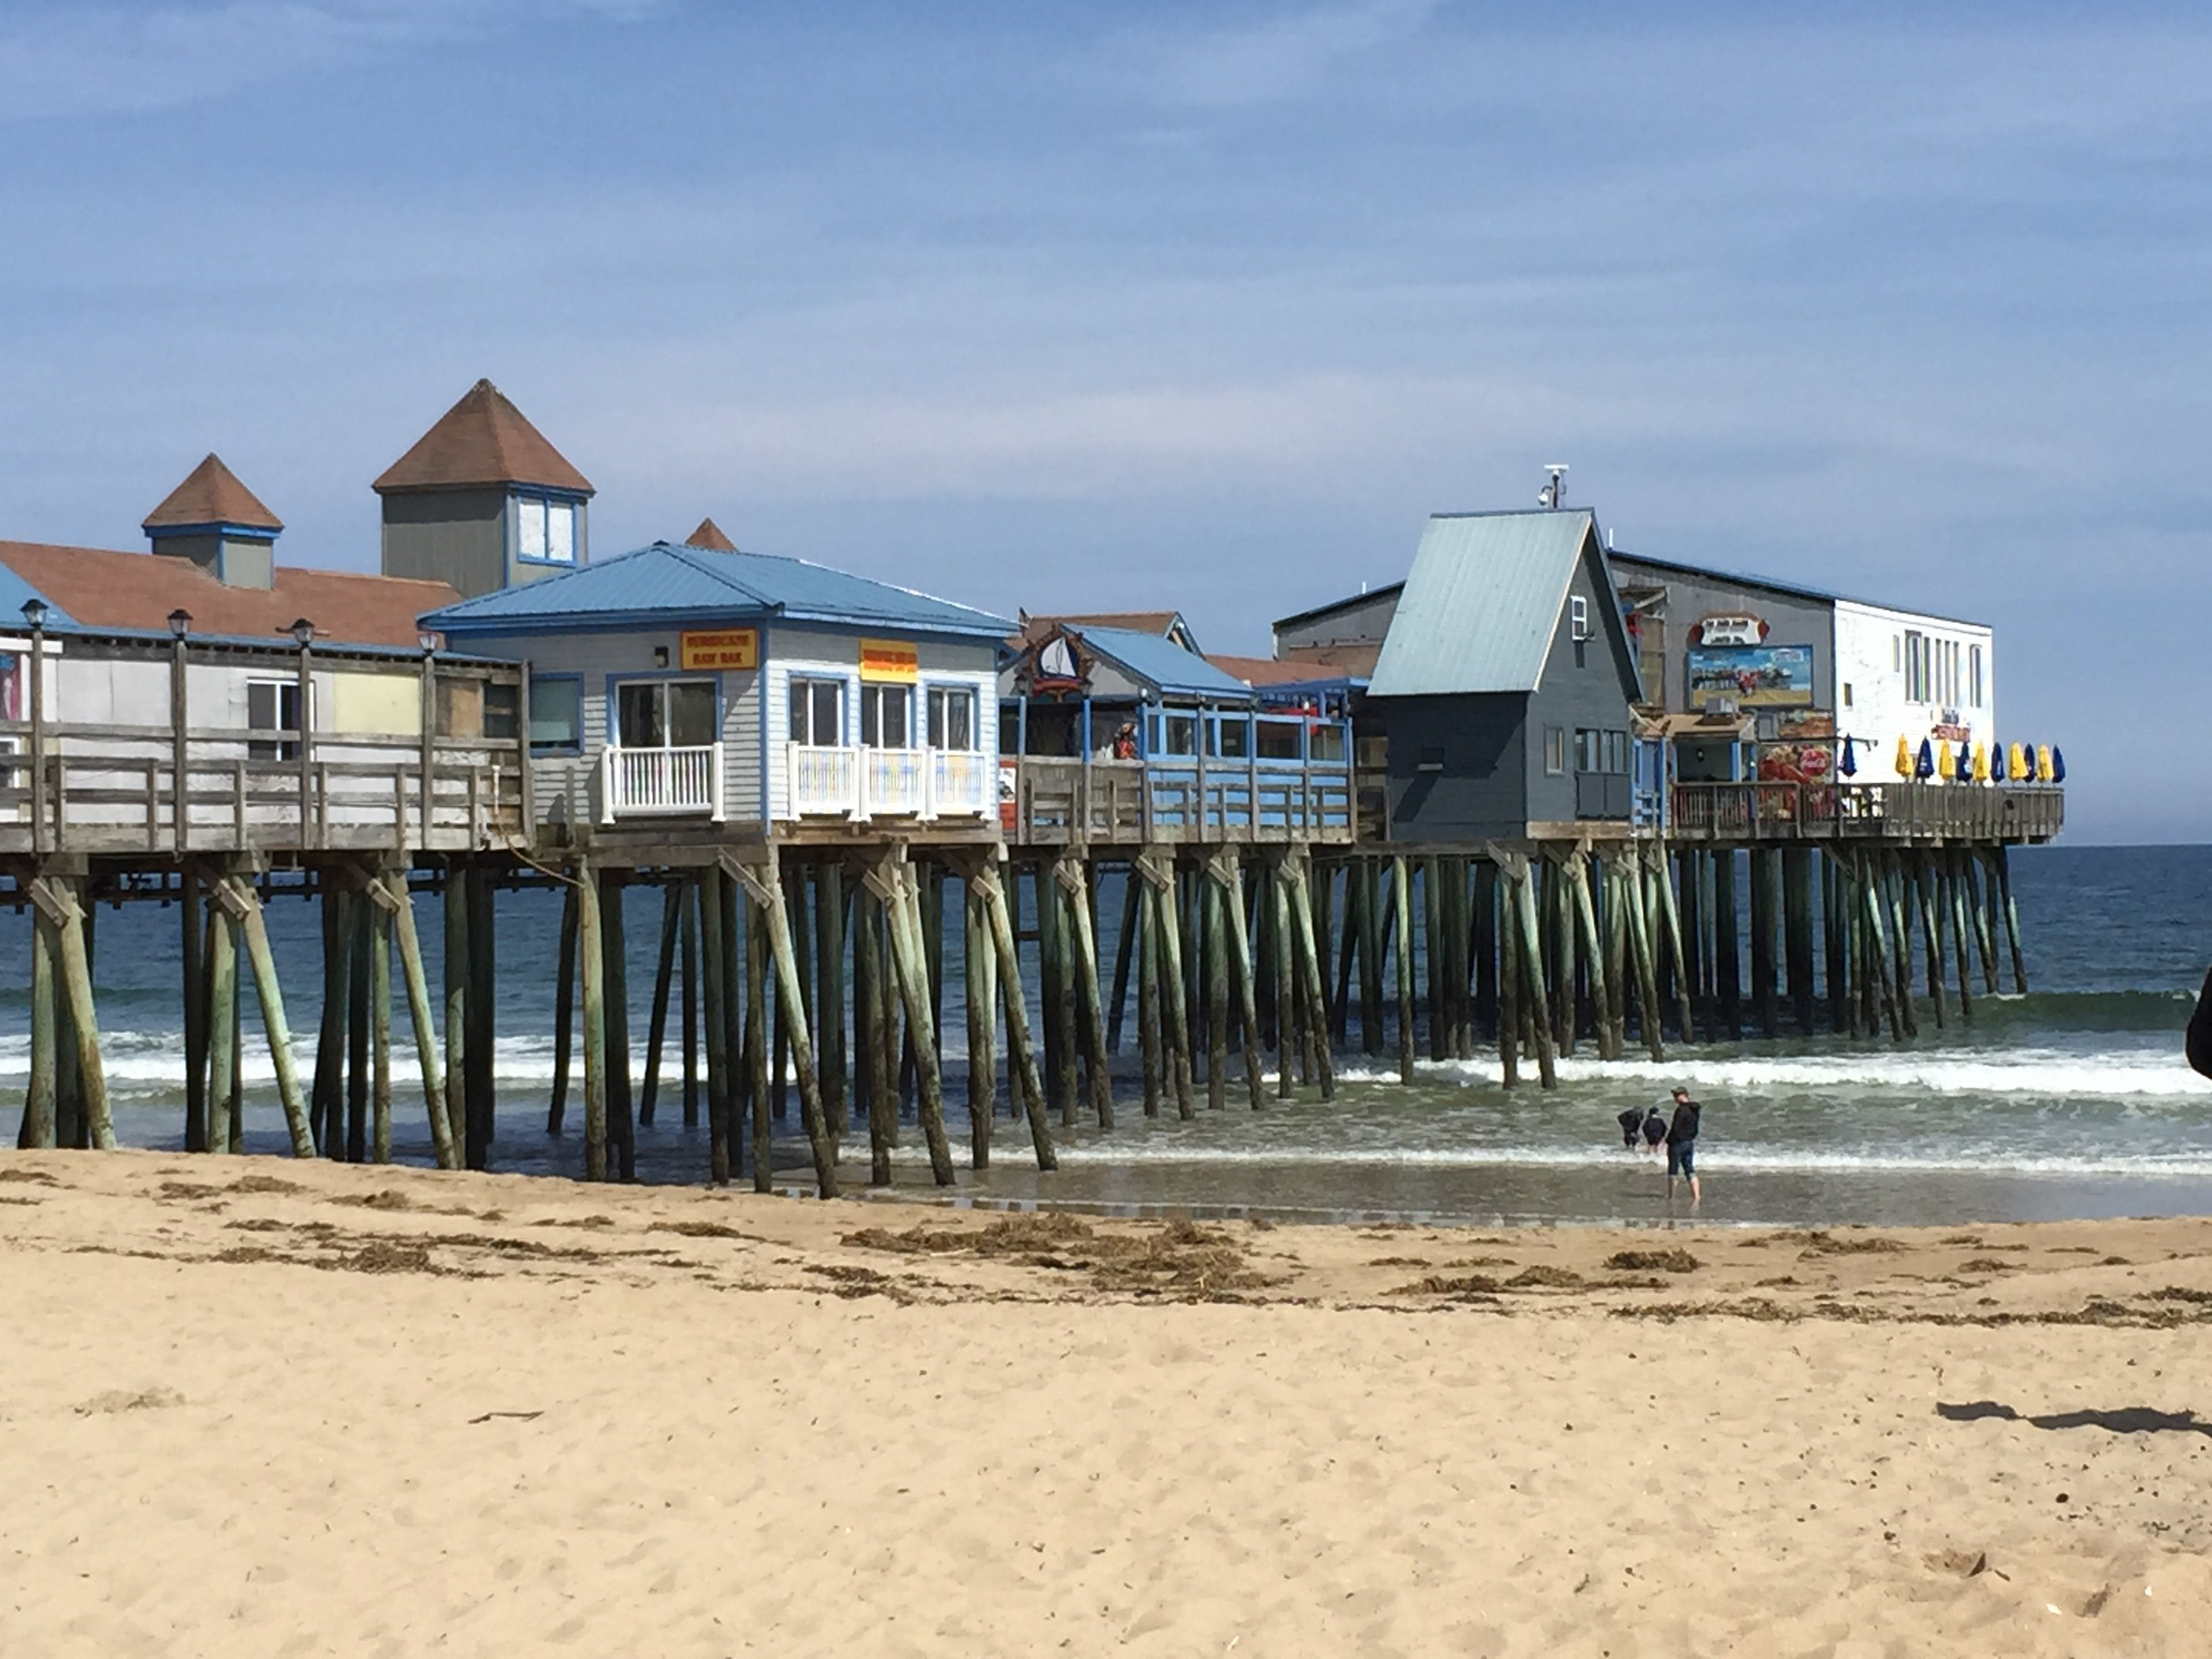 The Pier, in May